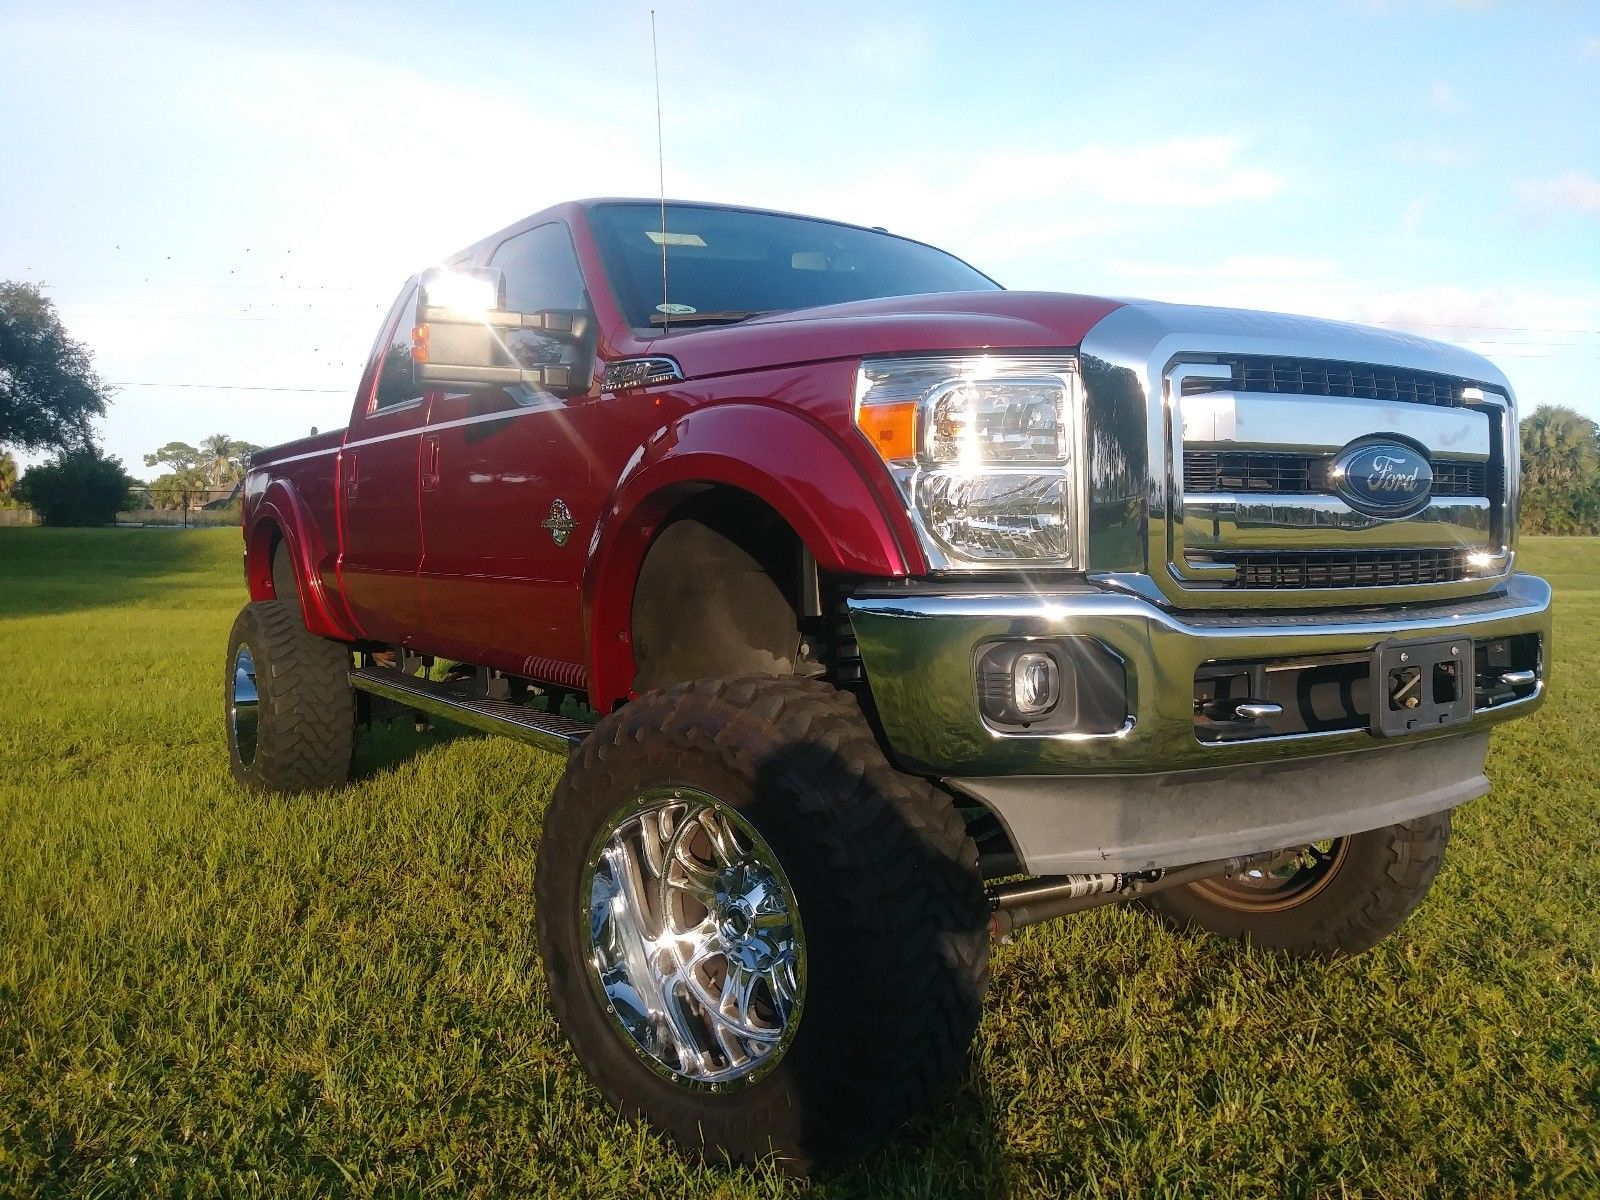 E E Bf D in addition High Lift Ford F Lariat Lifted For Sale furthermore Trunk Ram Crew Cab Limited moreover Lobo Consola together with B Ff C D A Afa De E Bf C. on ford f 150 heated seats